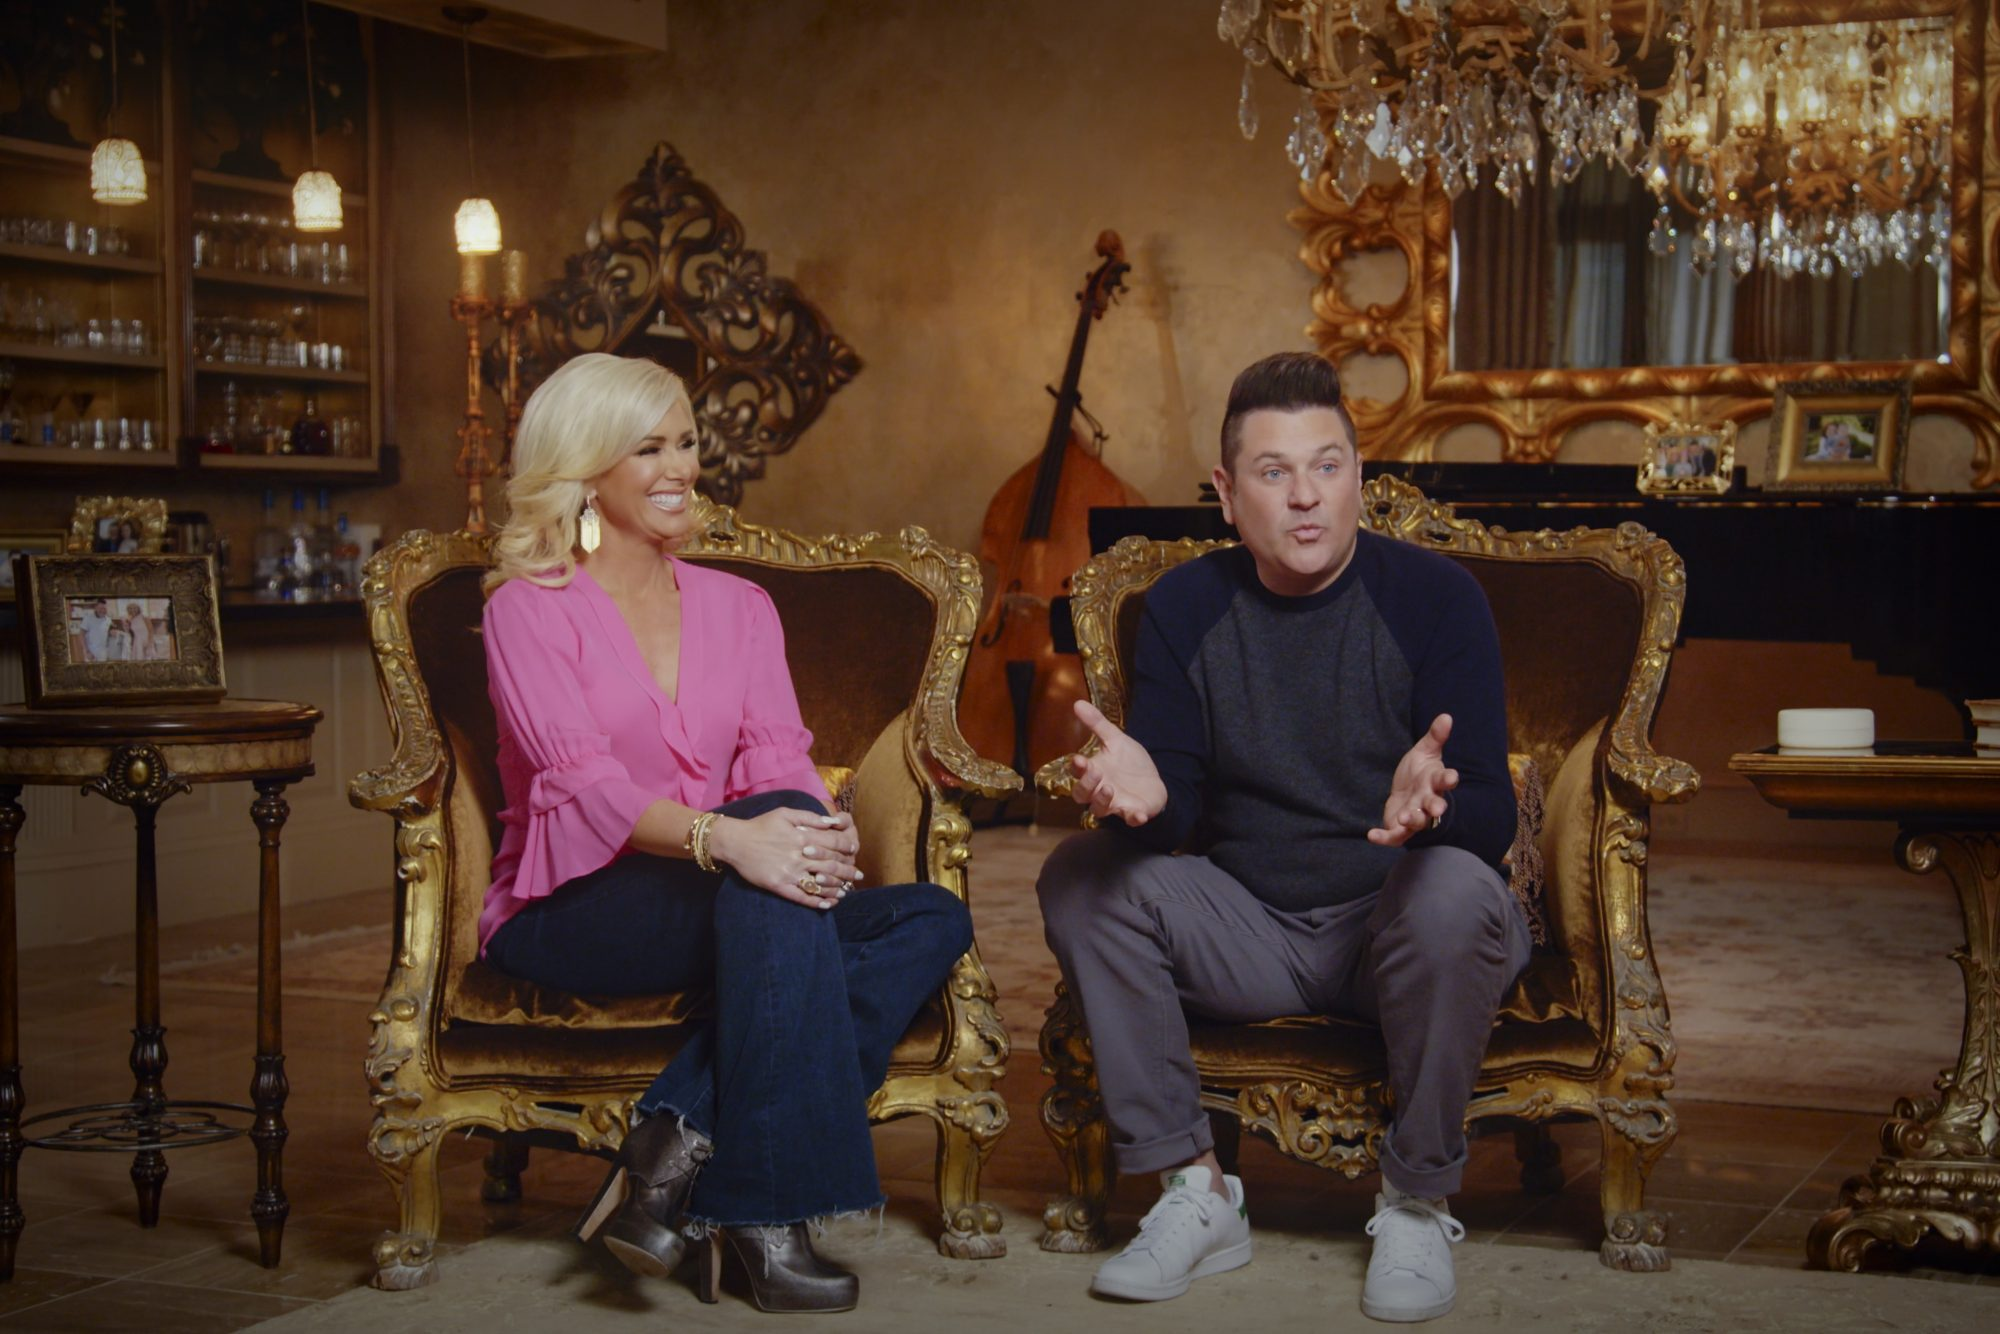 Allison DeMarcus and Jay DeMarcus in episode 1 of DEMARCUS FAMILY RULES